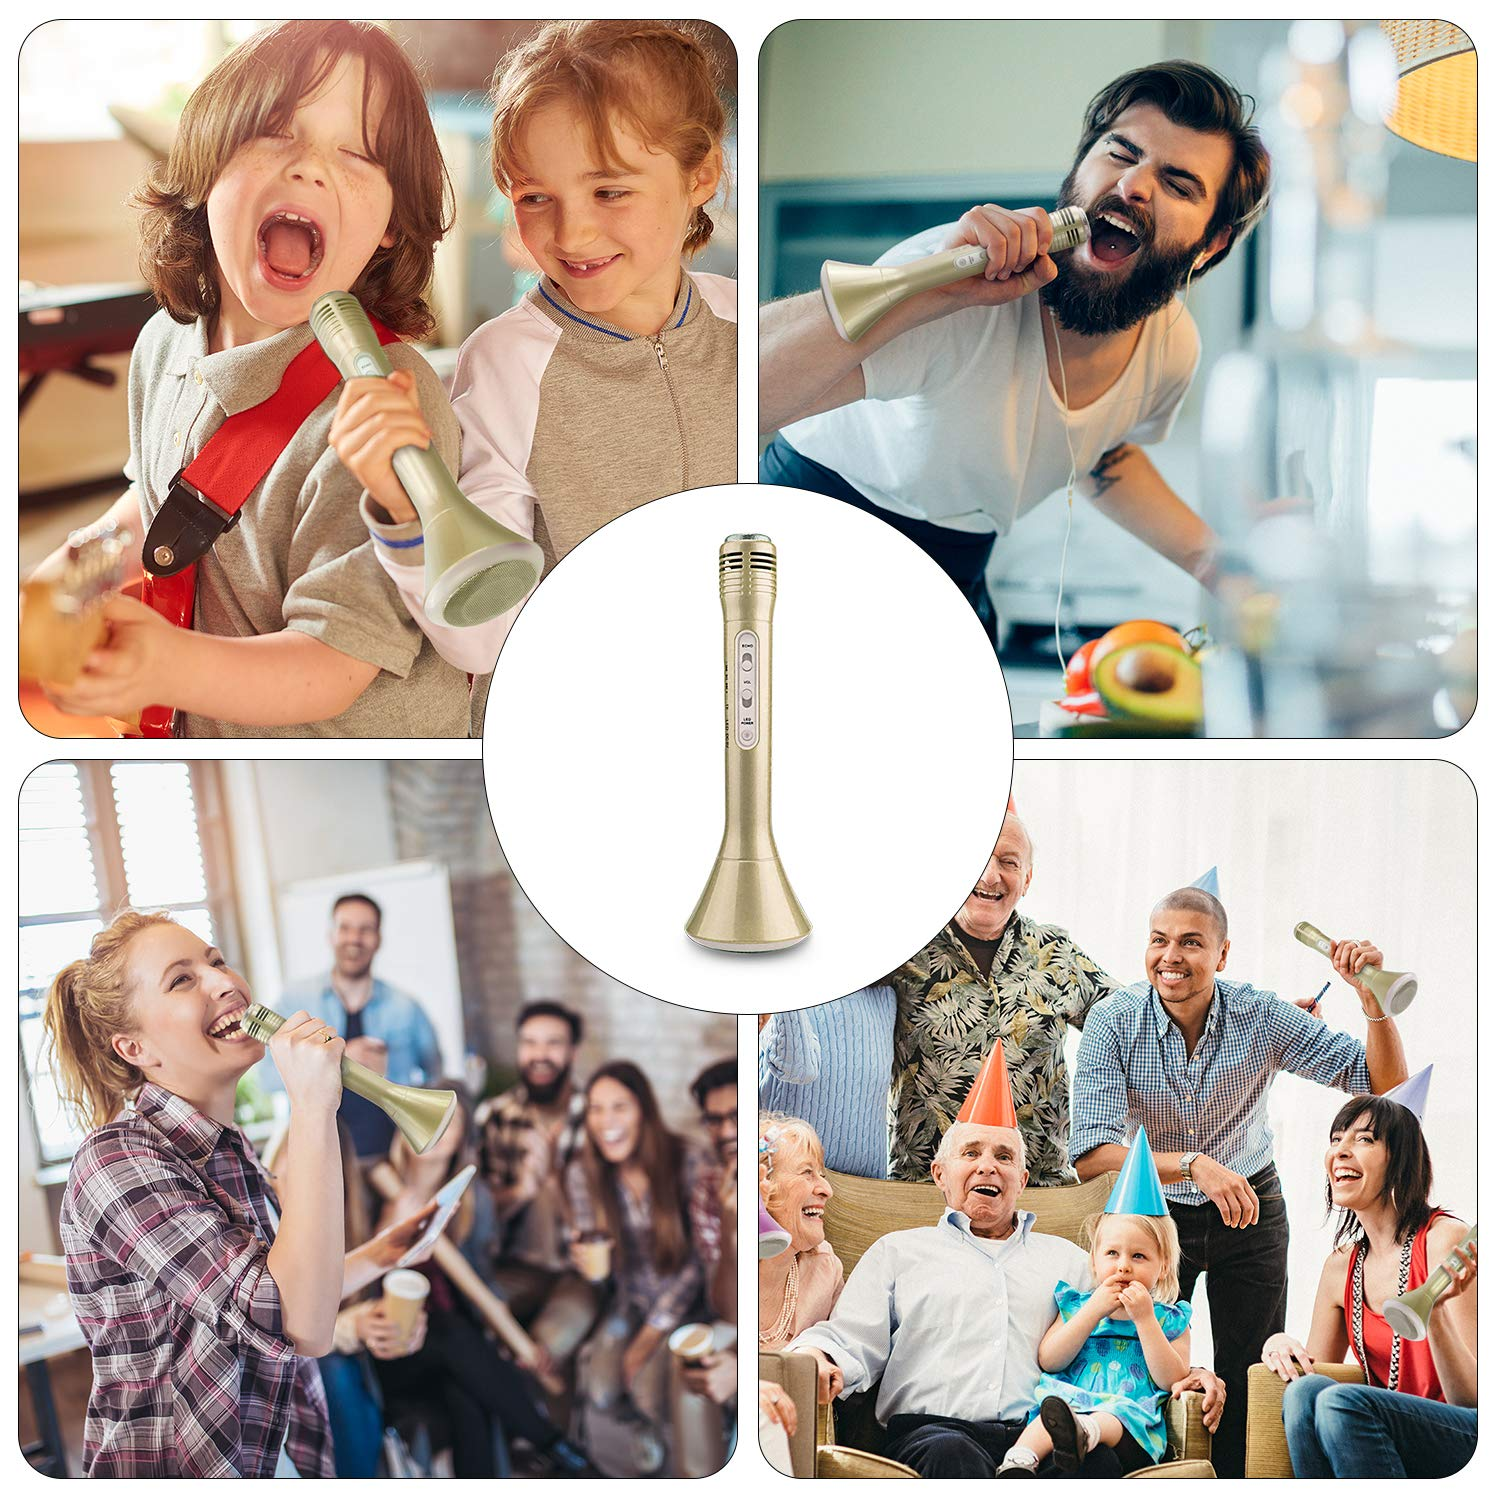 Microphone for Kids, Wireless Bluetooth Microphone with Bluetooth Speaker and Multi-color LED Lights Handheld Singing Machine Girls Boys Birthday Gift Compatible with PC/iPad/Smartphone - (Champagne) by WOSTOO (Image #6)